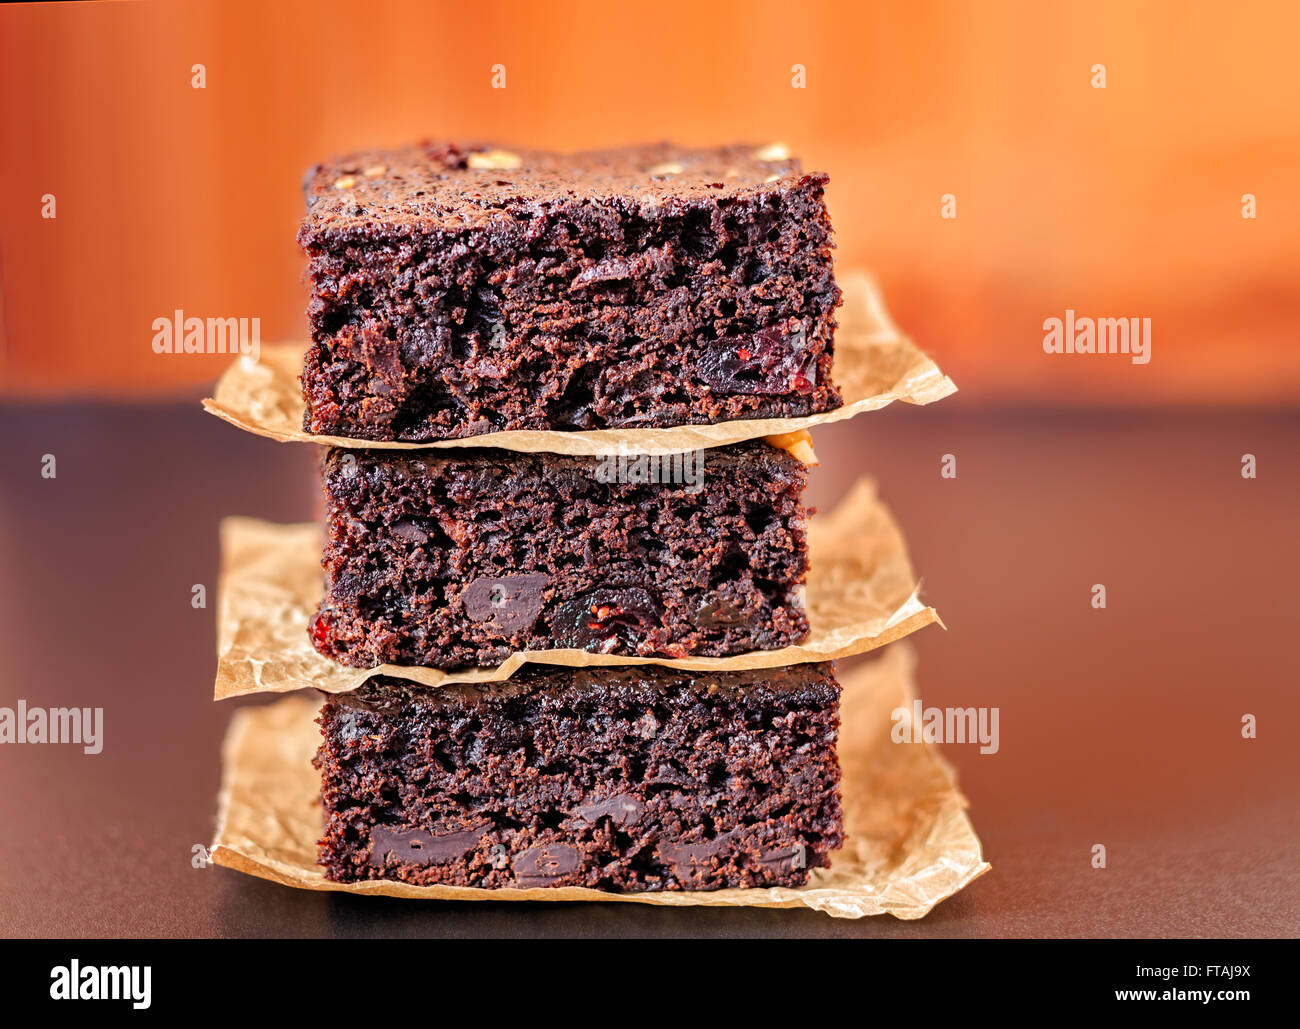 Three stacked chocolate chip brownies on parchment paper. - Stock Image